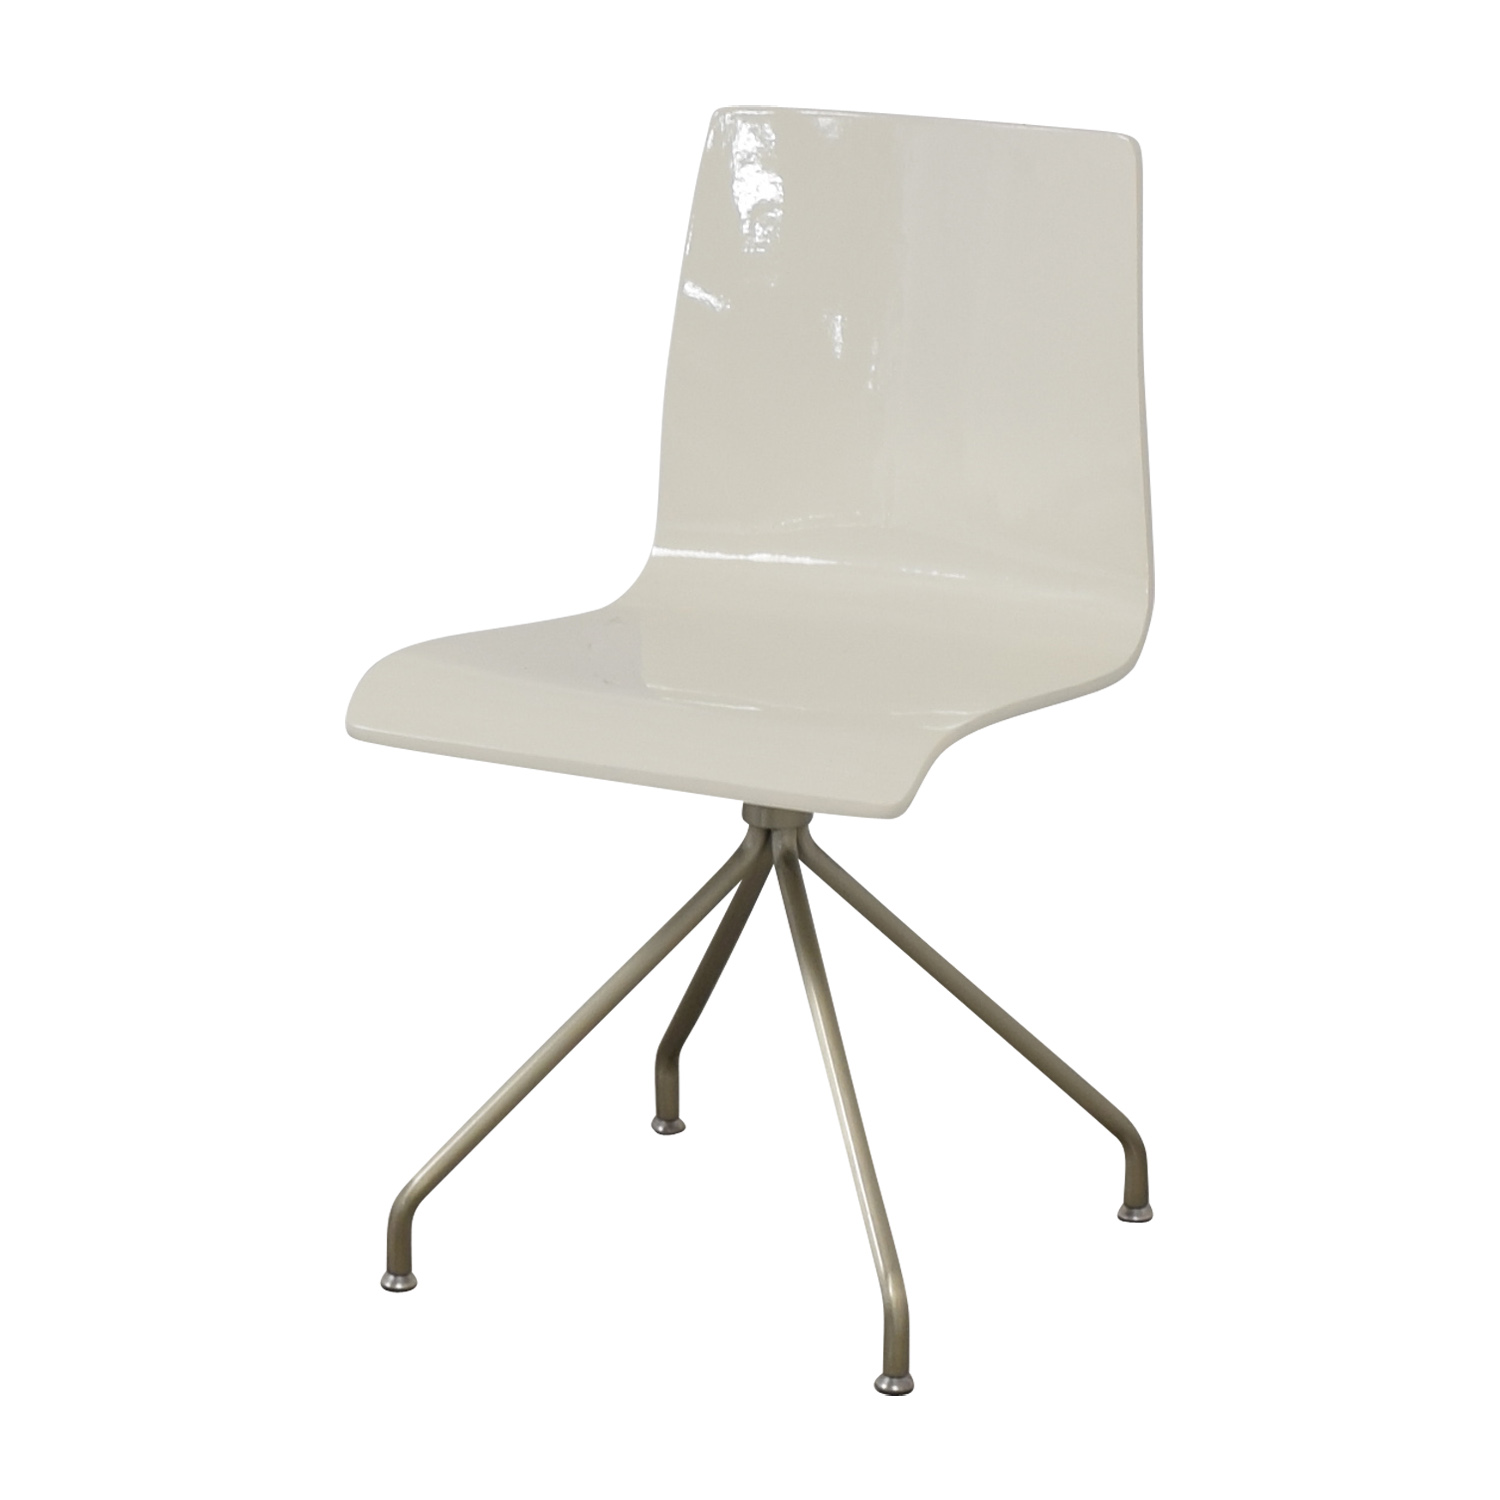 buy Crate & Barrel White Office Chair Crate & Barrel Home Office Chairs